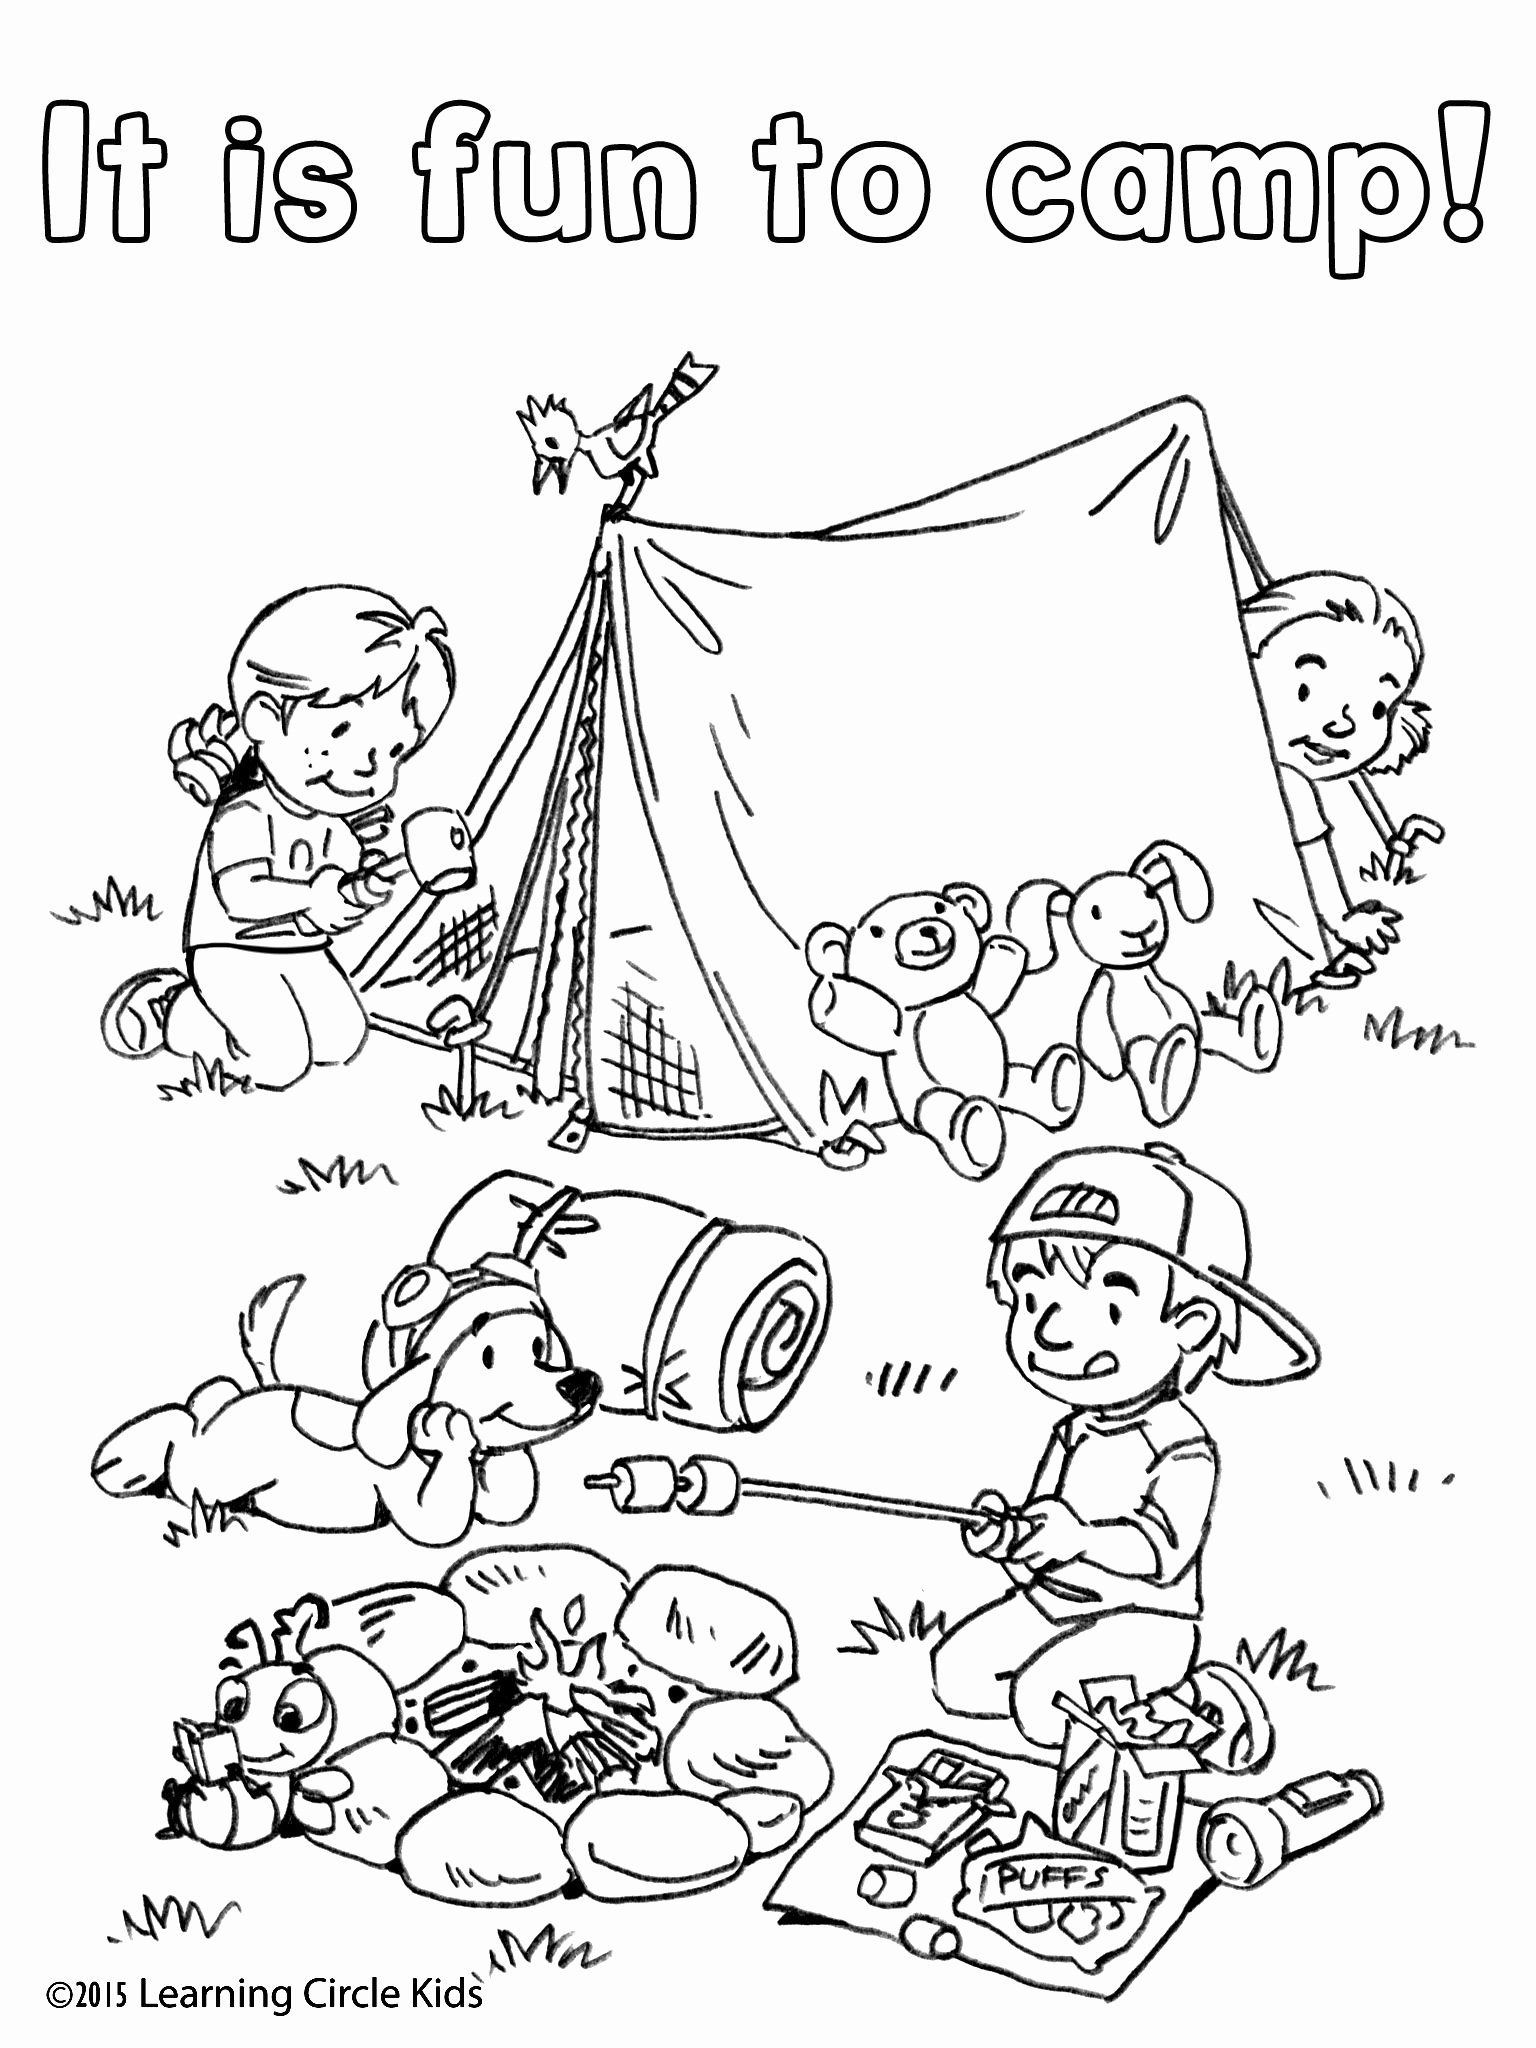 Coloring Pages Summer Fun Inspirational Free Coloring And Reading Page Summer Fun Camping With In 2020 Camping Coloring Pages Camping Theme Preschool Camping Preschool